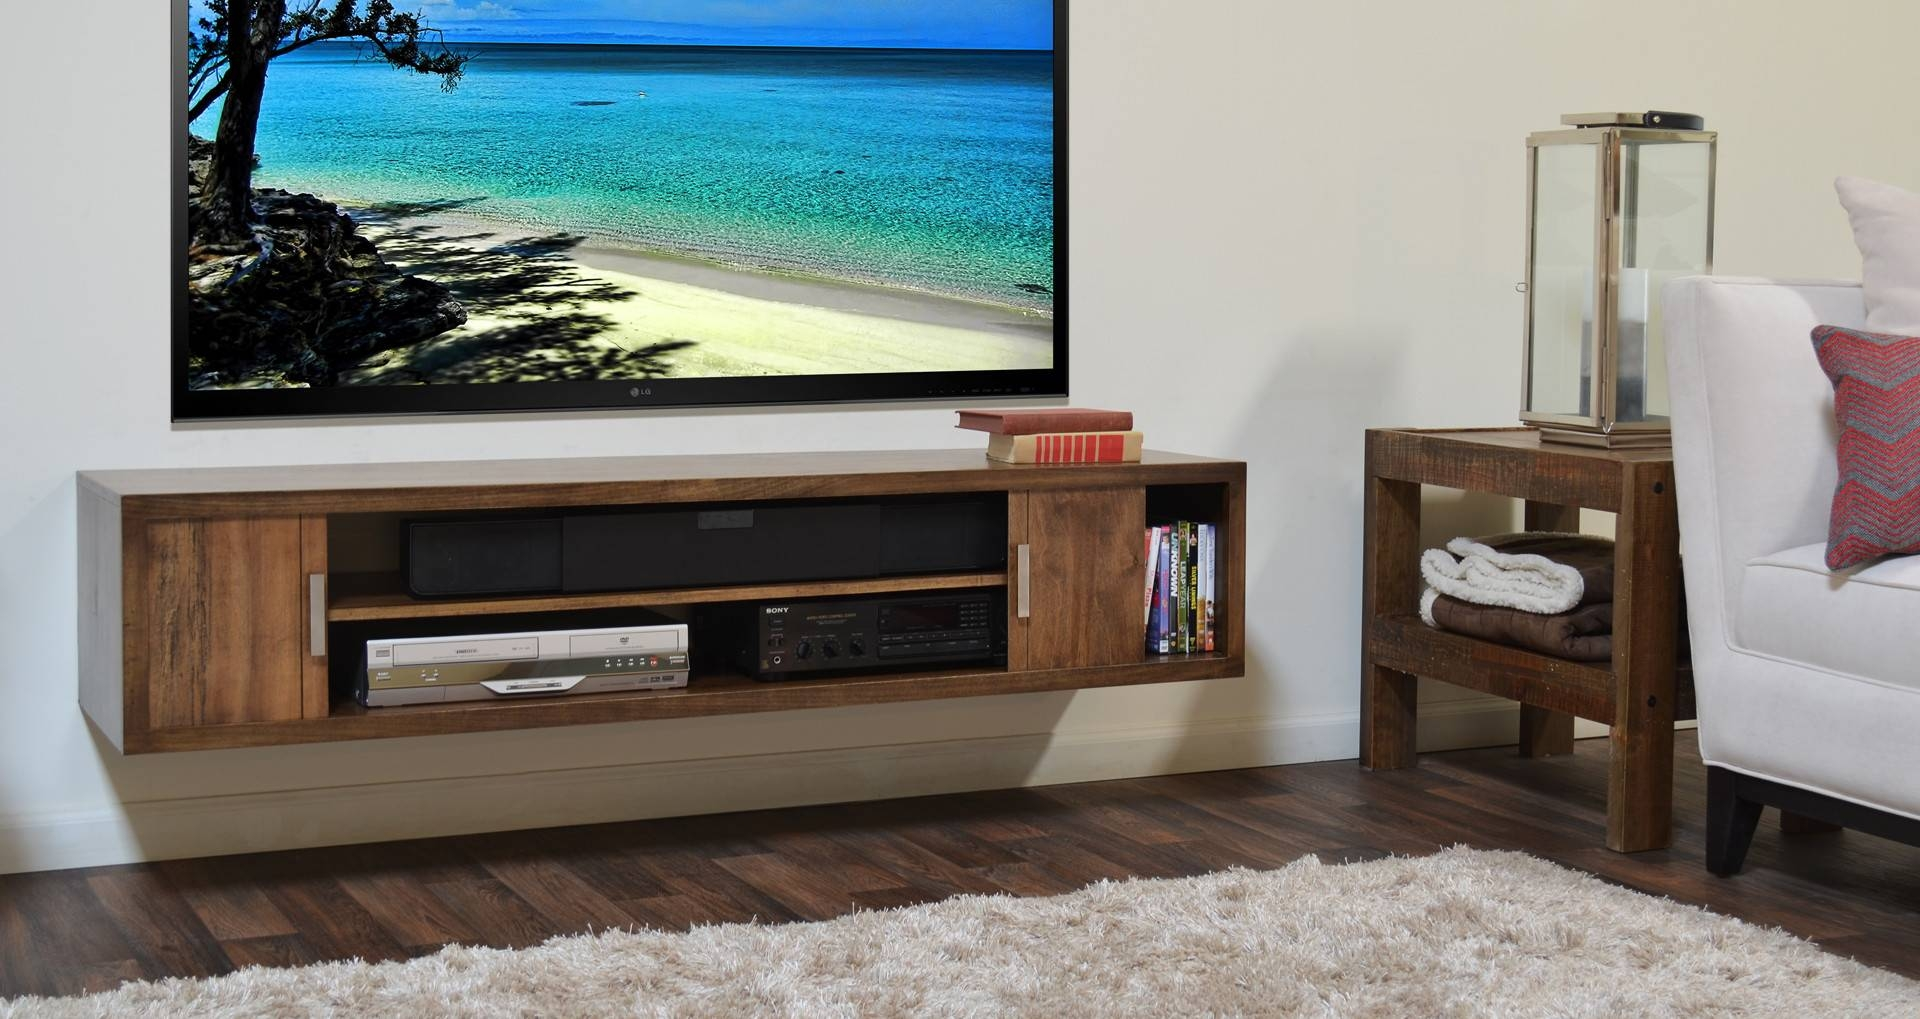 Inspirational Photos Of Wall Mount Tv Stands - Furniture Designs with Acrylic Tv Stands (Image 8 of 15)